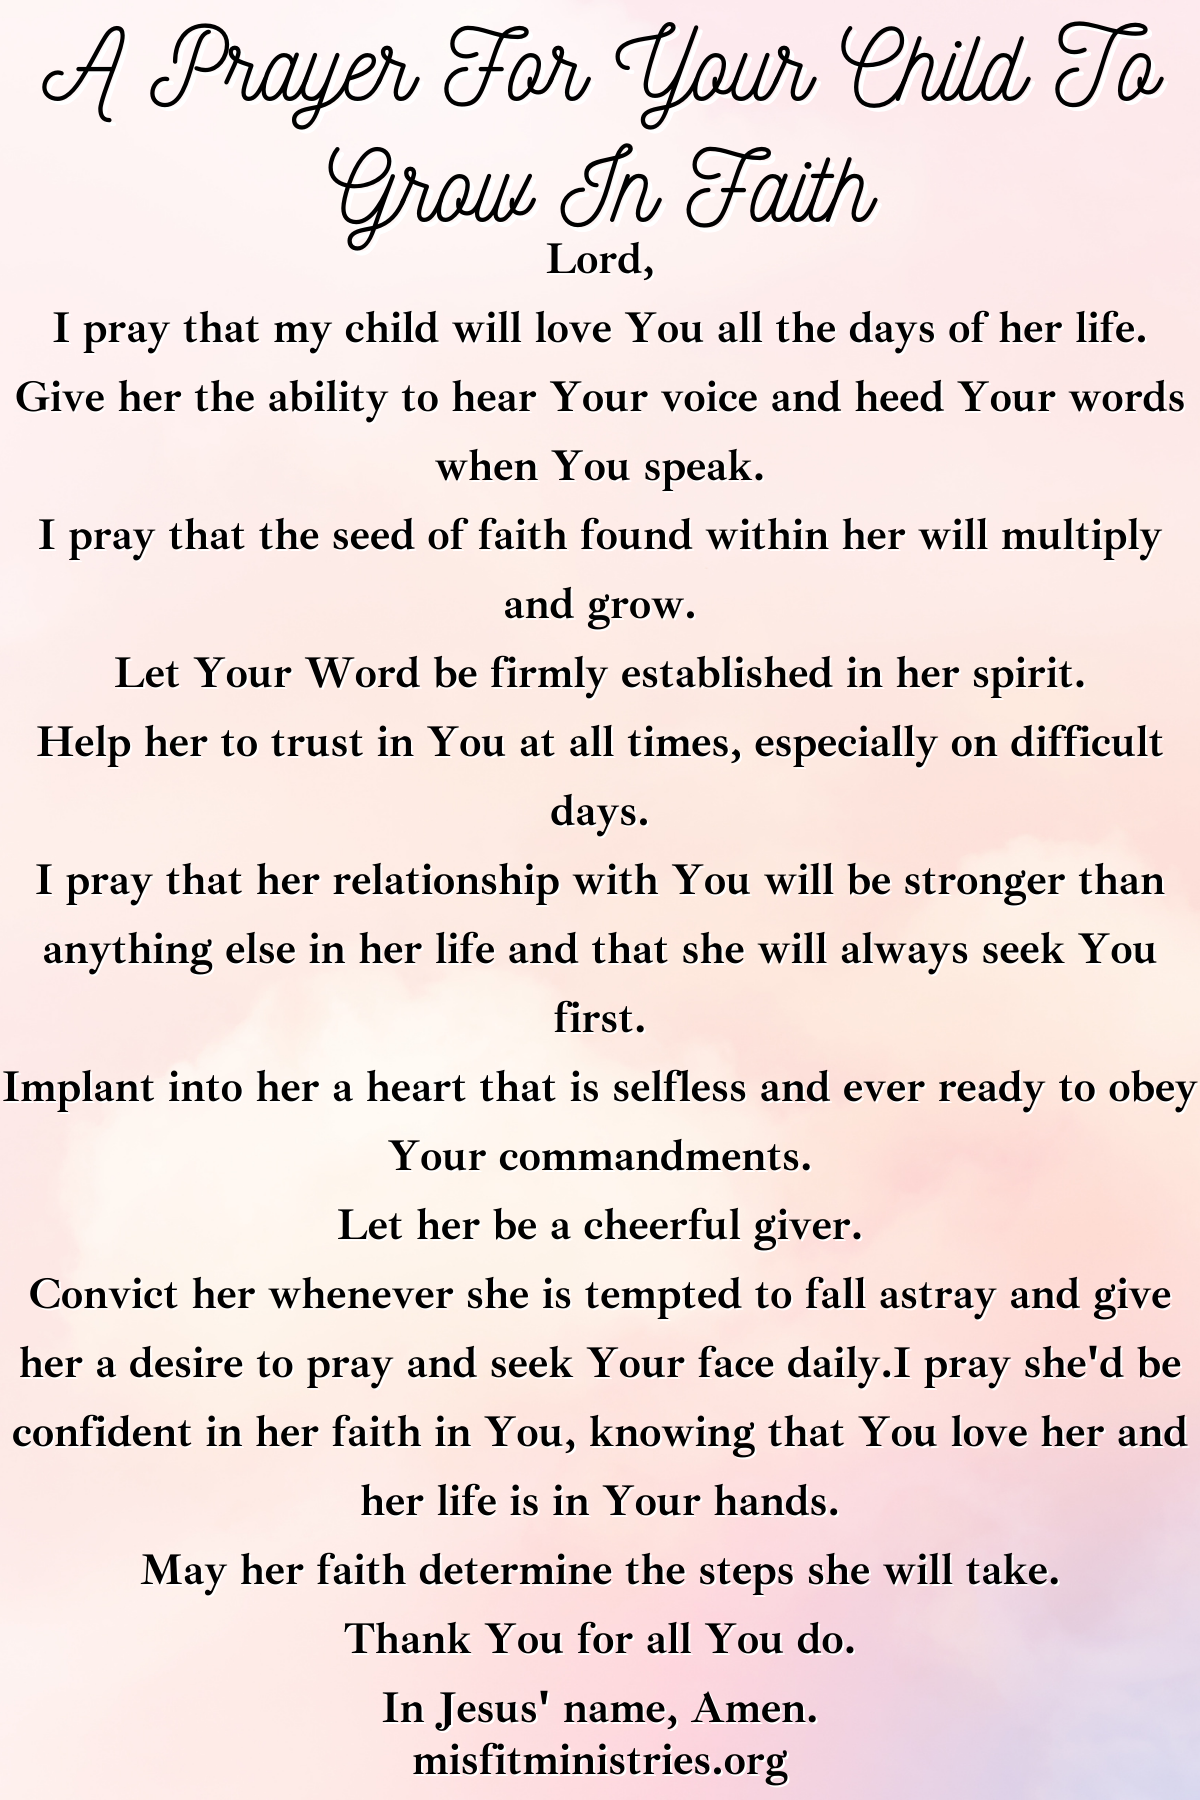 a prayer for your child to grow in faith